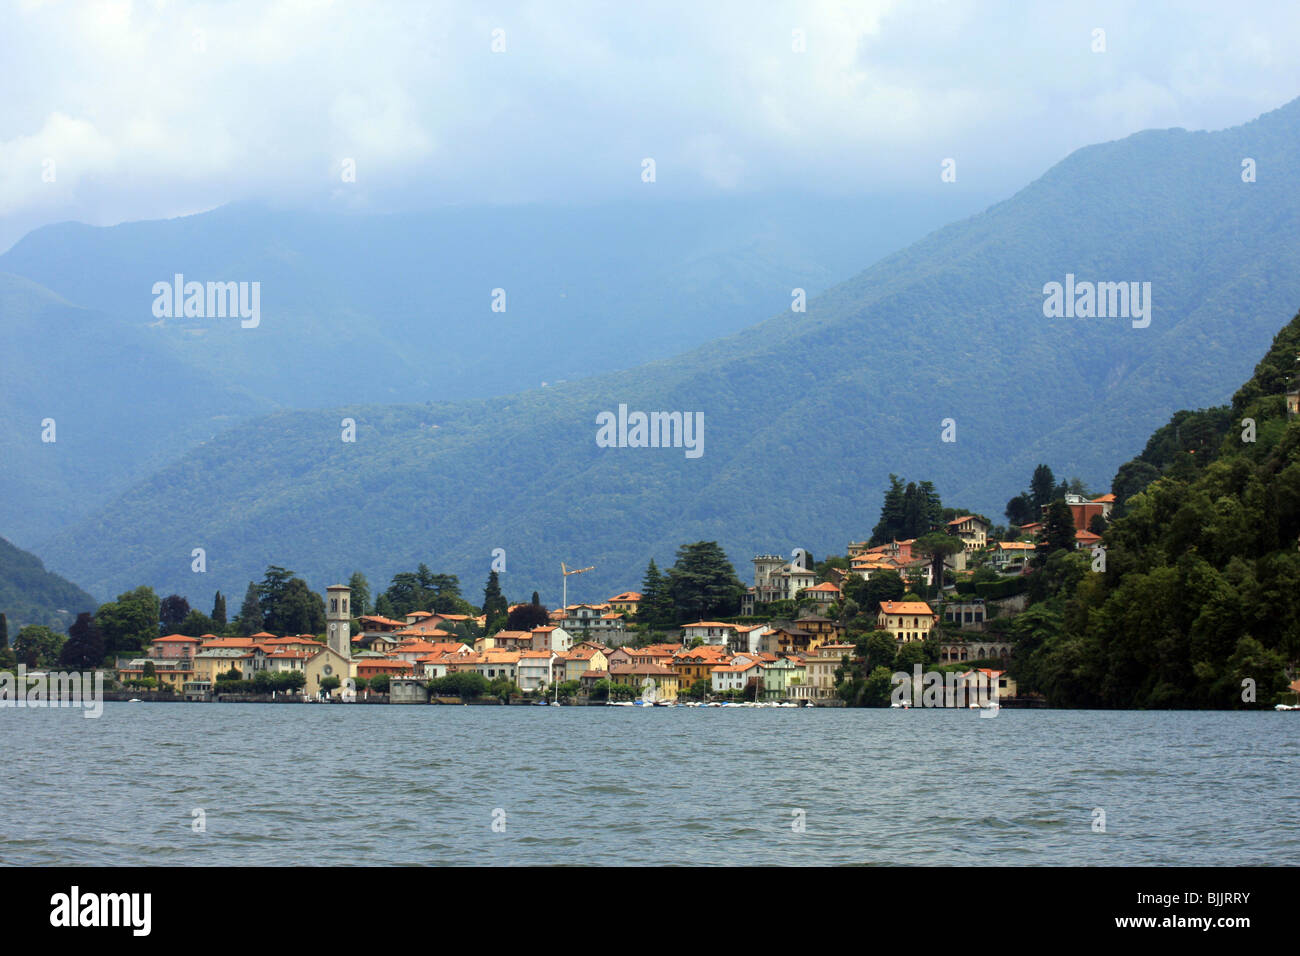 Italy, Lombardy, Lake Como the city of Como as seen from the lake - Stock Image